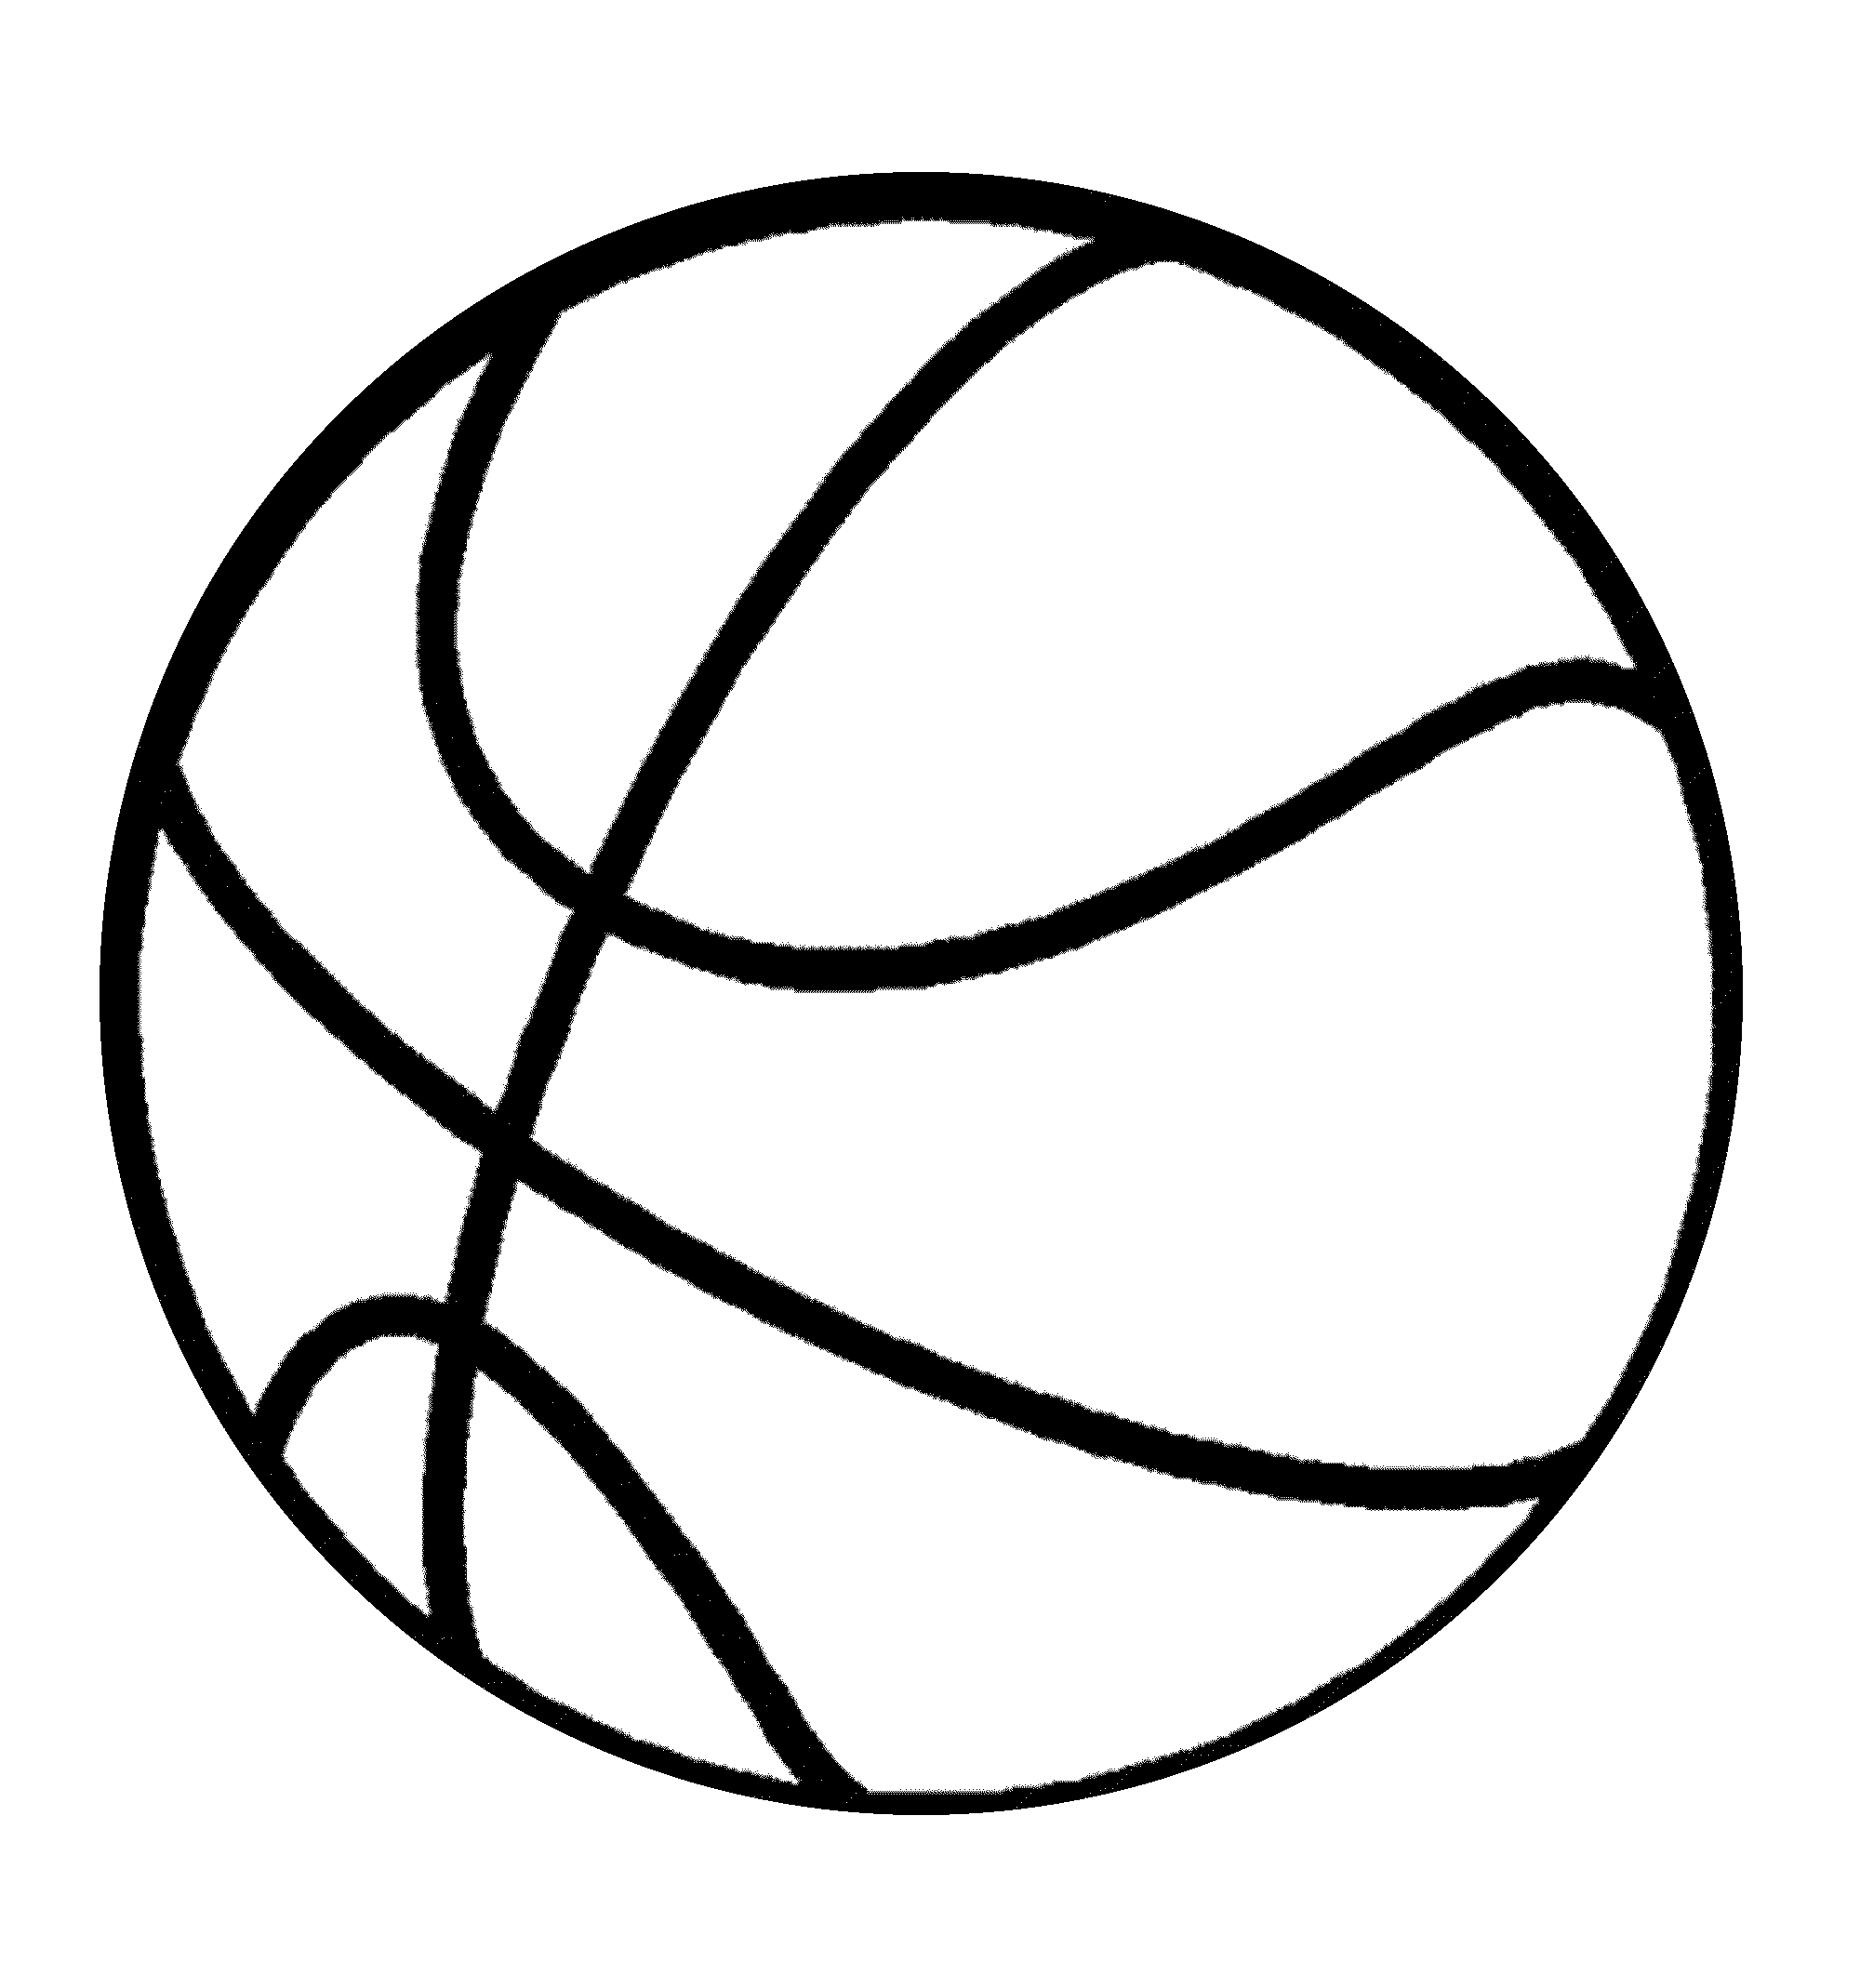 coloring pages of basketball basketball to color for kids basketball kids coloring pages coloring pages basketball of